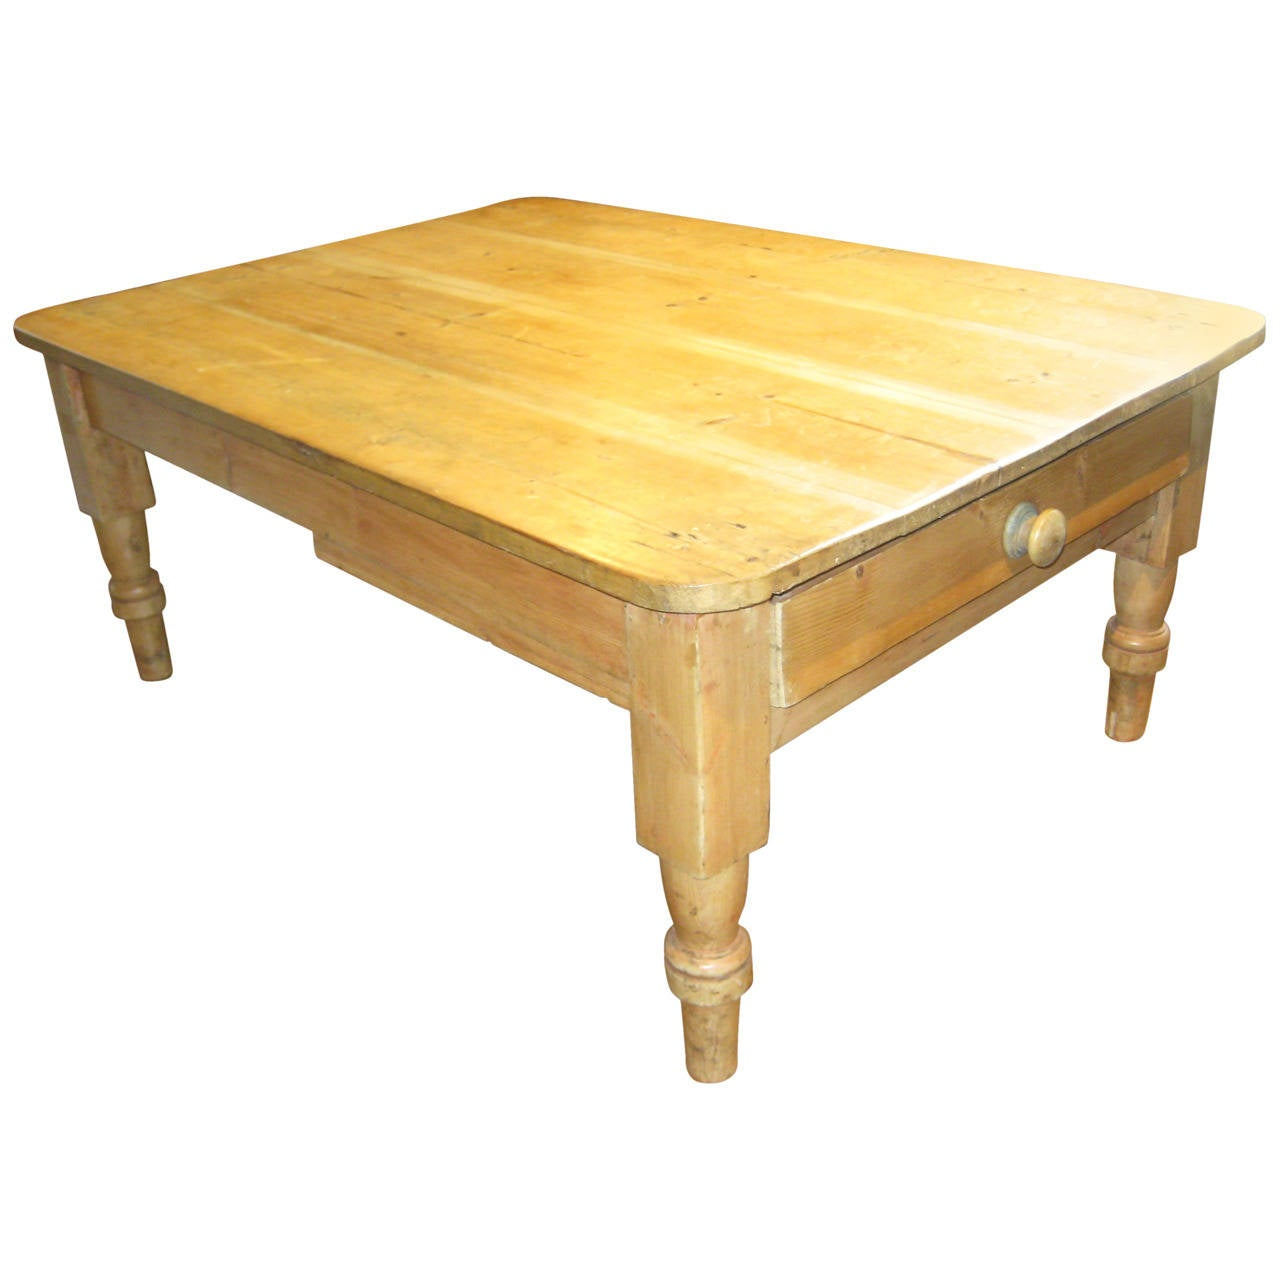 Pine coffee table for sale at 1stdibs for Coffee table sale online